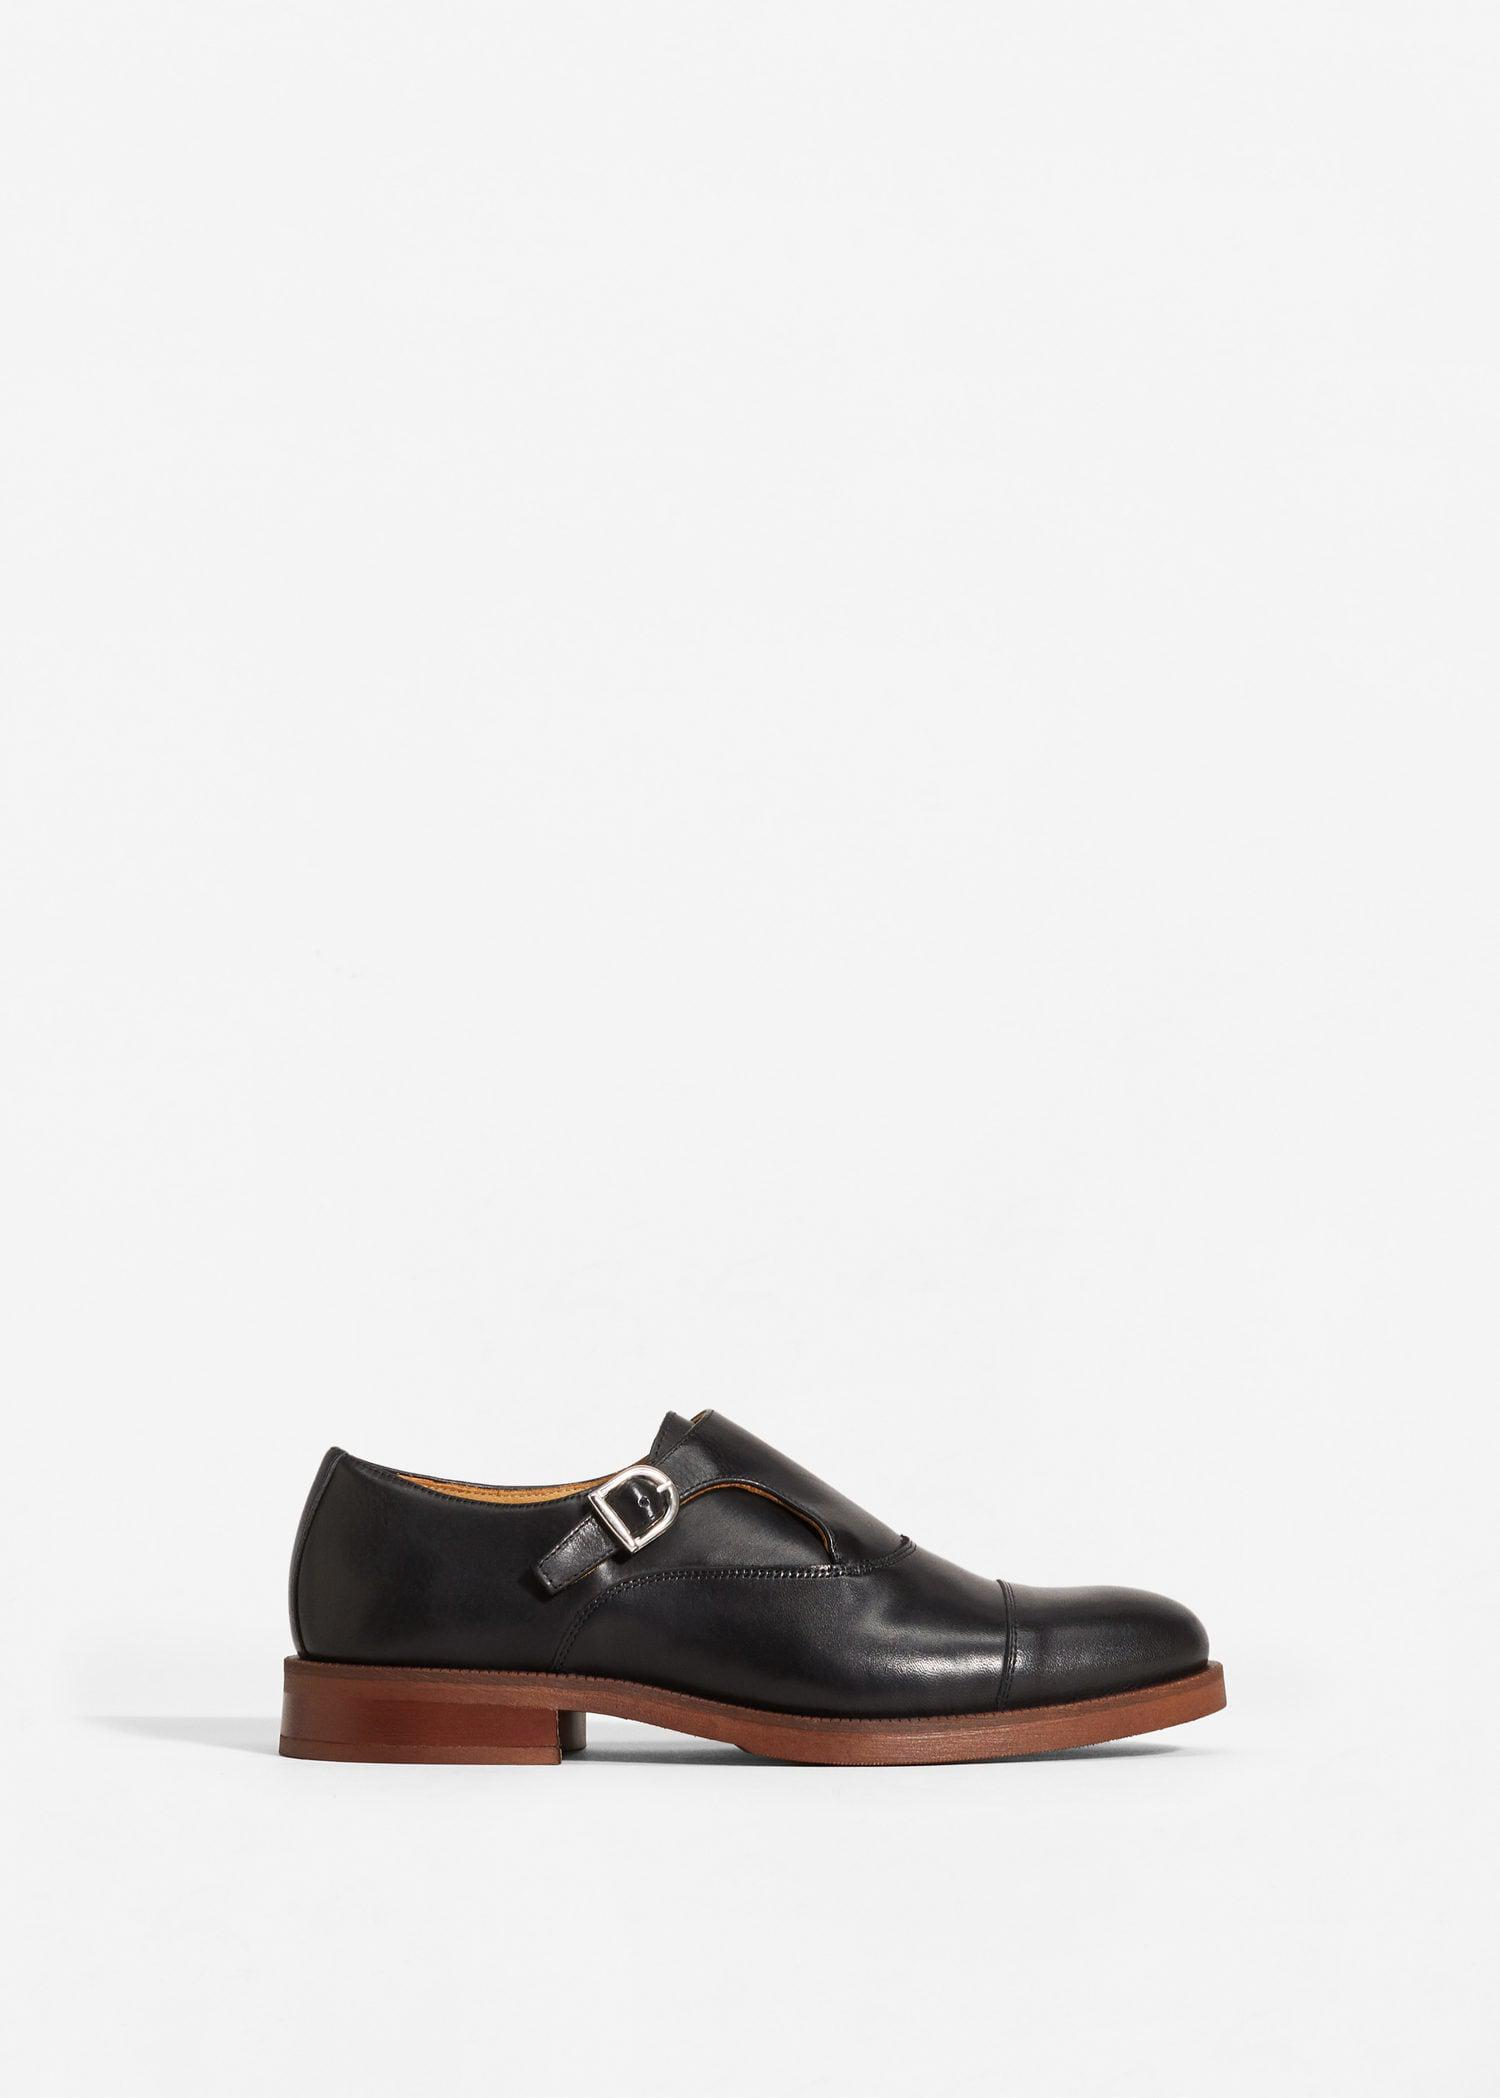 Mango Leather Monk-strap Shoes in Black for Men